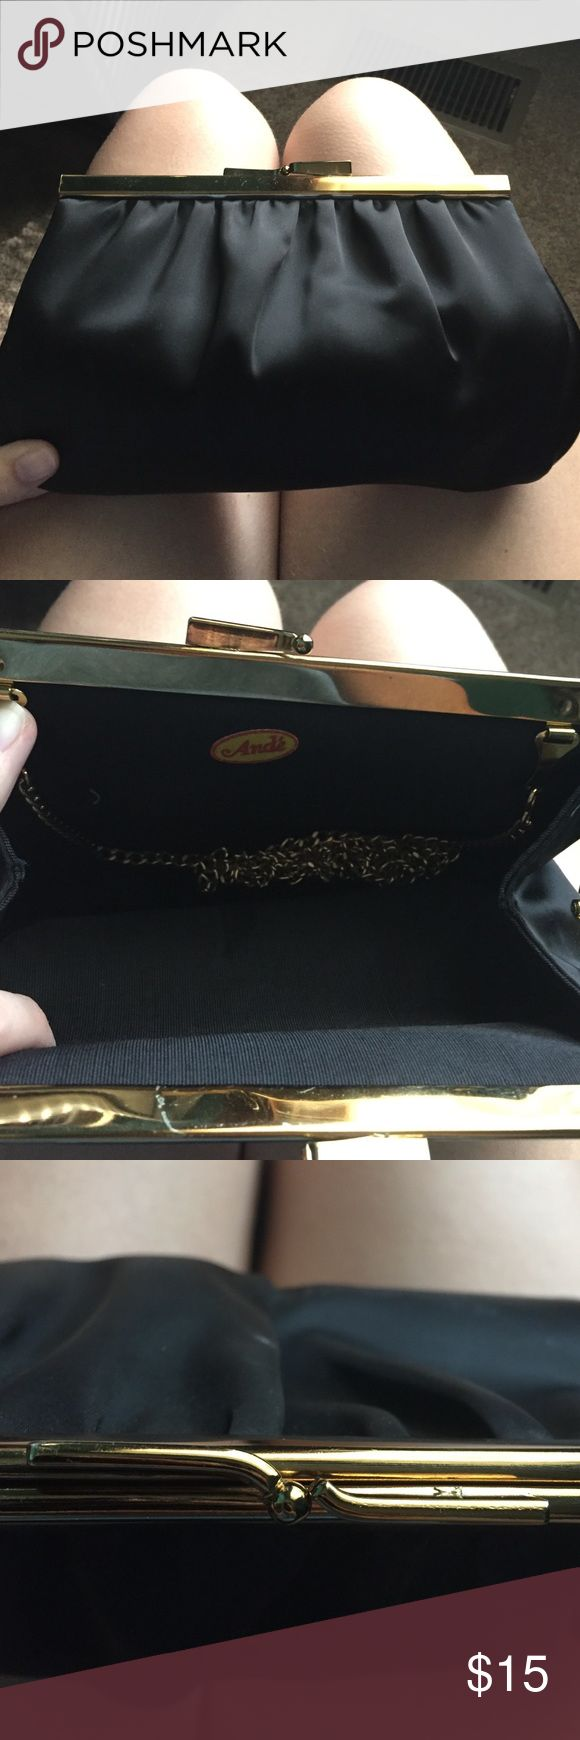 Black & Gold Clutch Perfect for prom! In really good shape! Bags Clutches & Wristlets